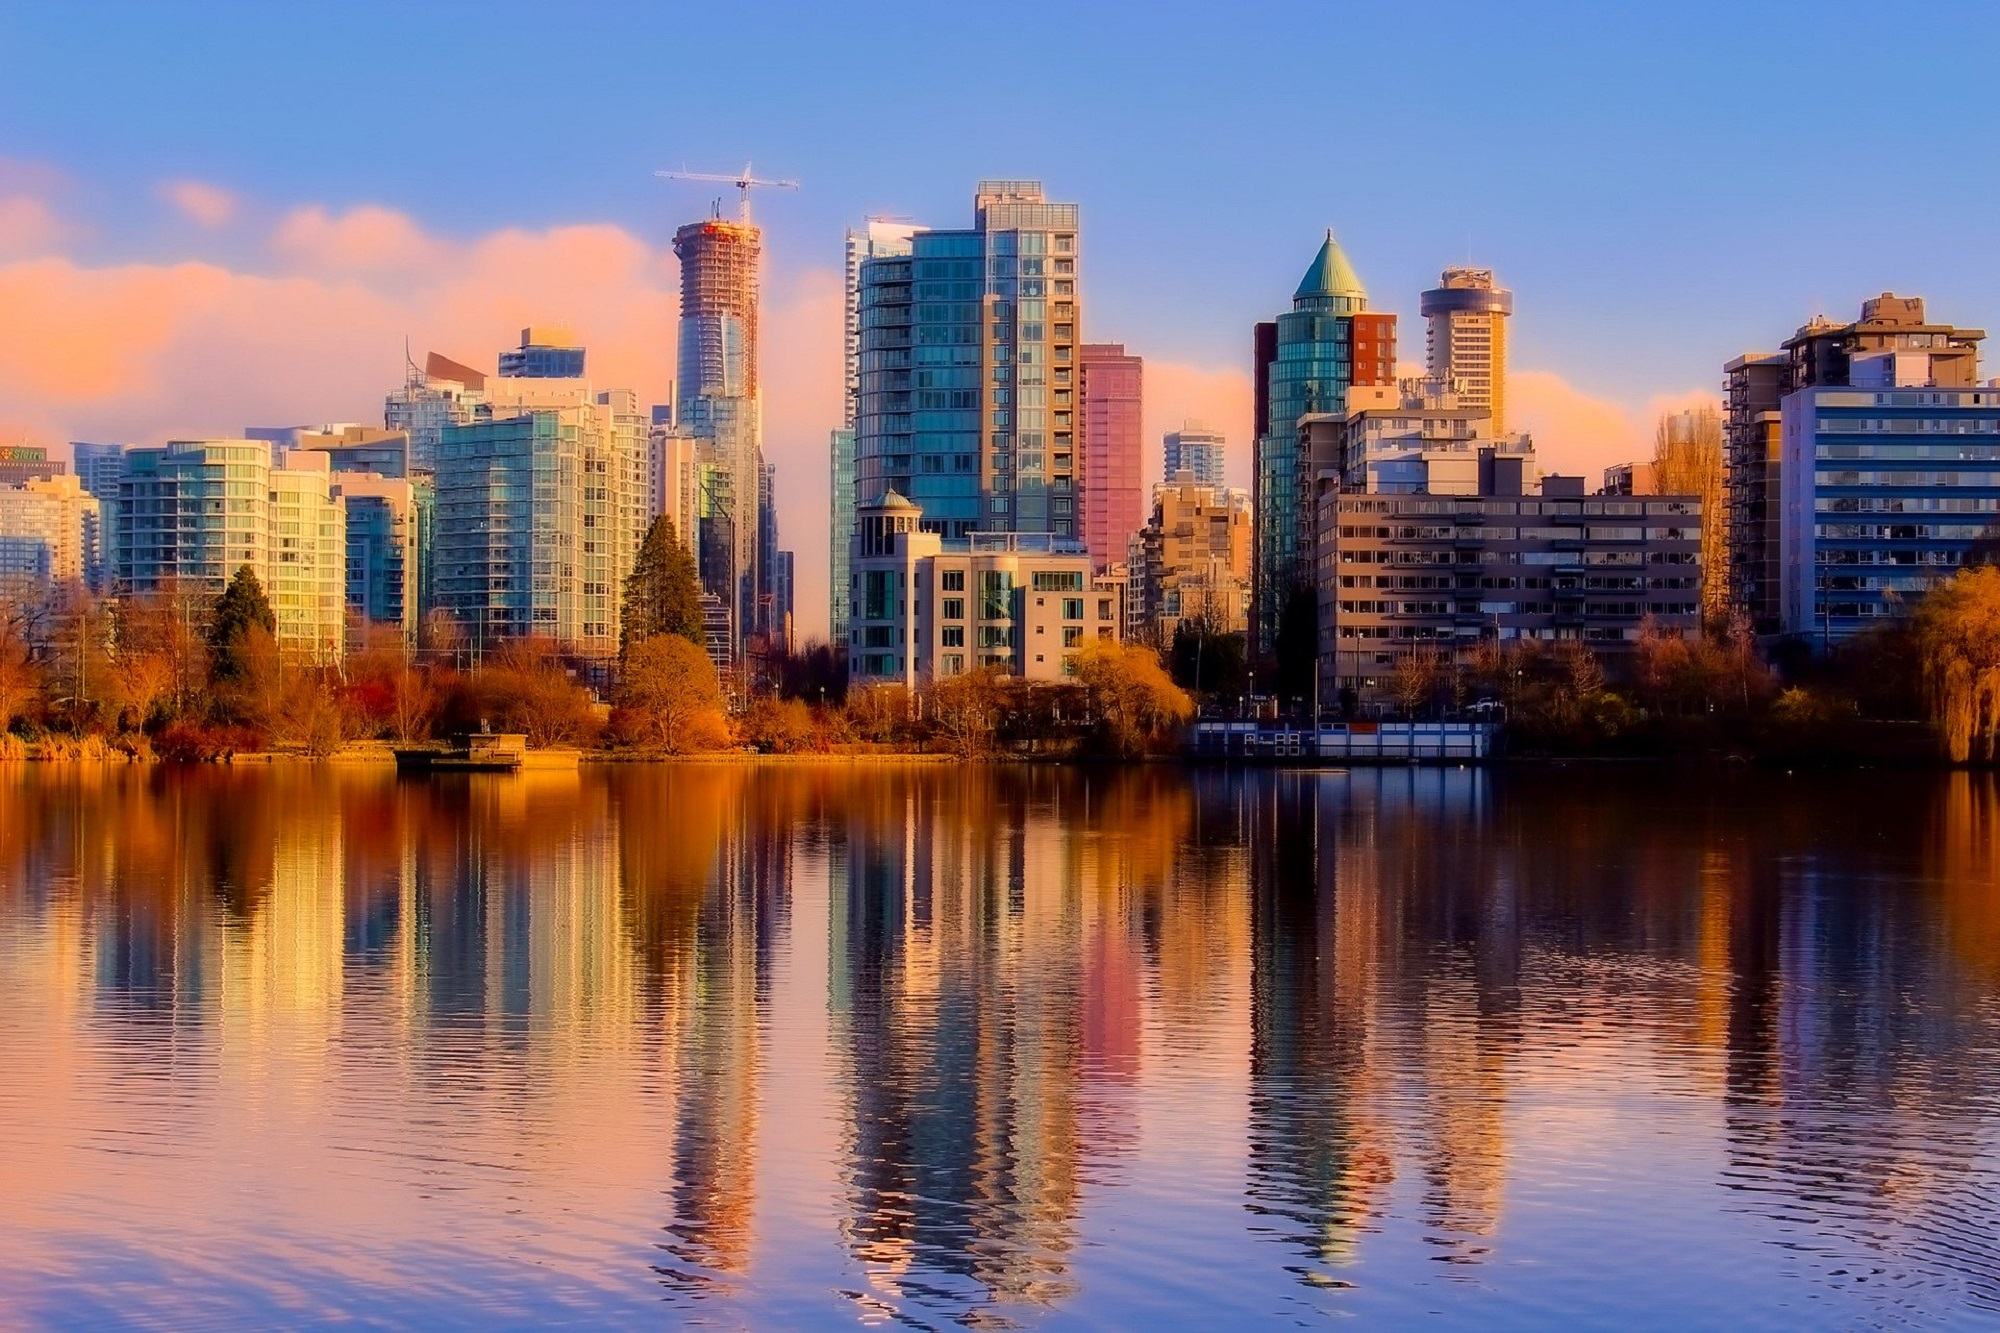 vancouver-2613994_1920 (2)